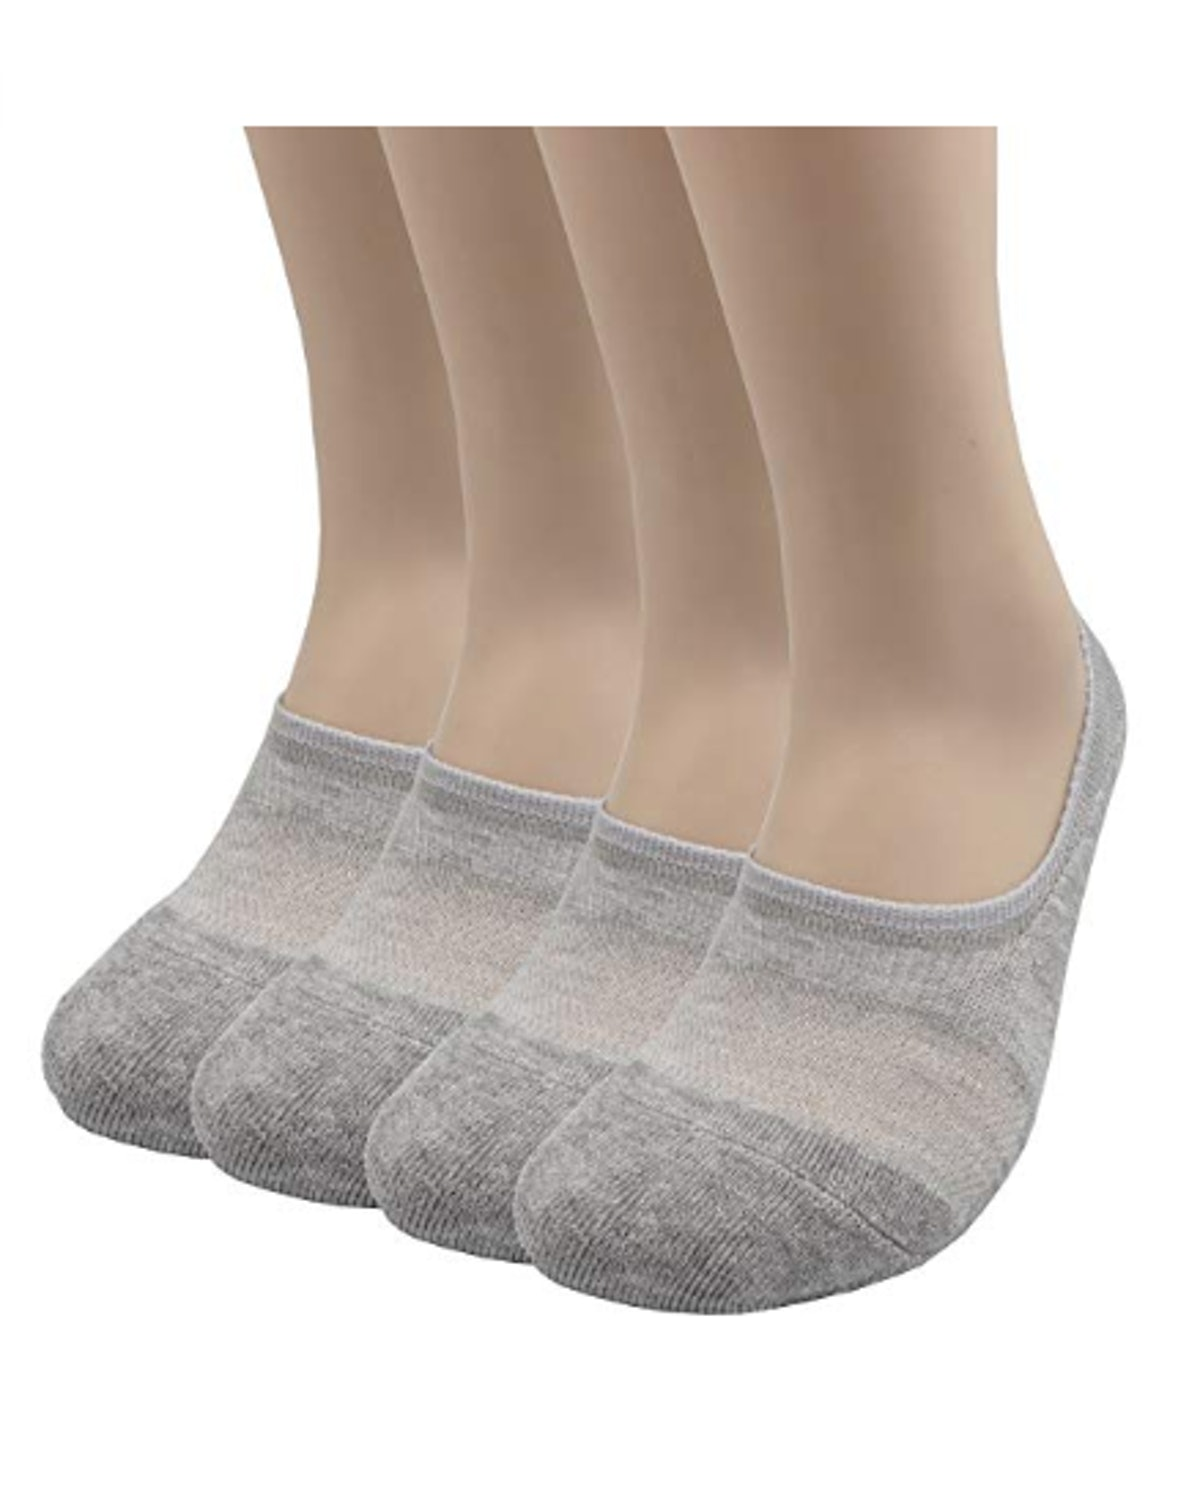 Pro Mountain No-Show Athletic Socks (4 Pack)